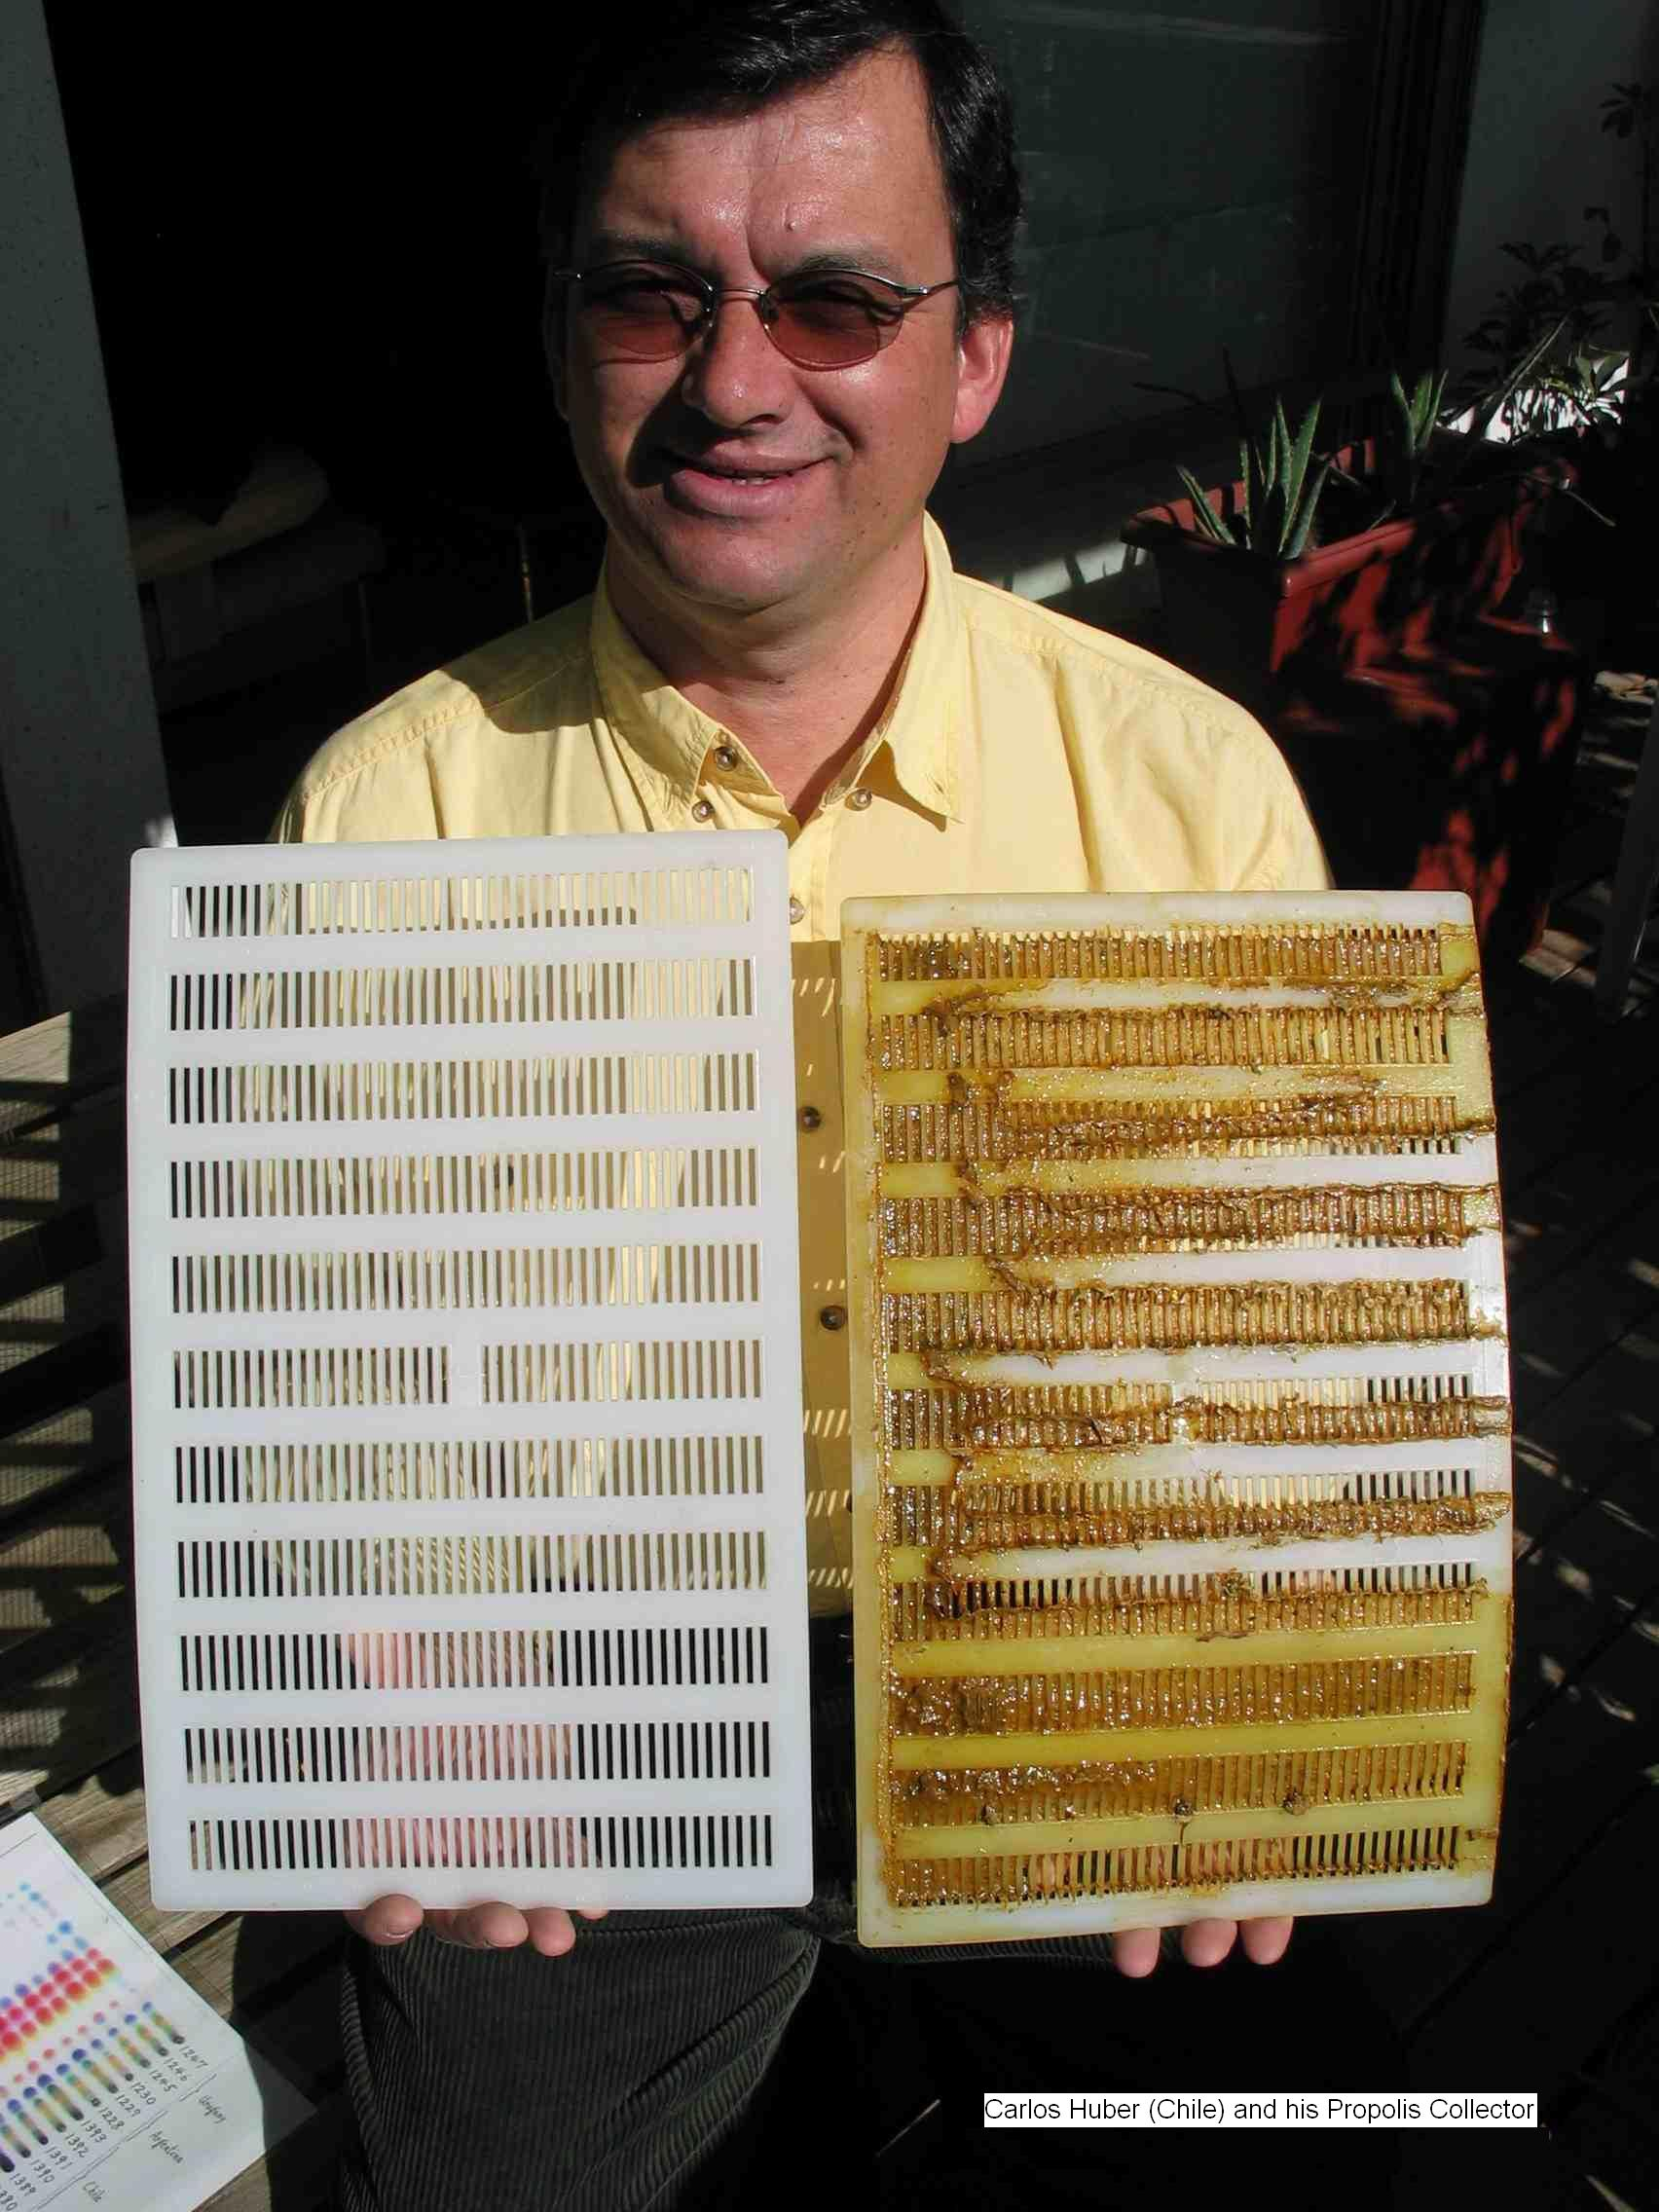 Carlos and his Chilean propolis collector